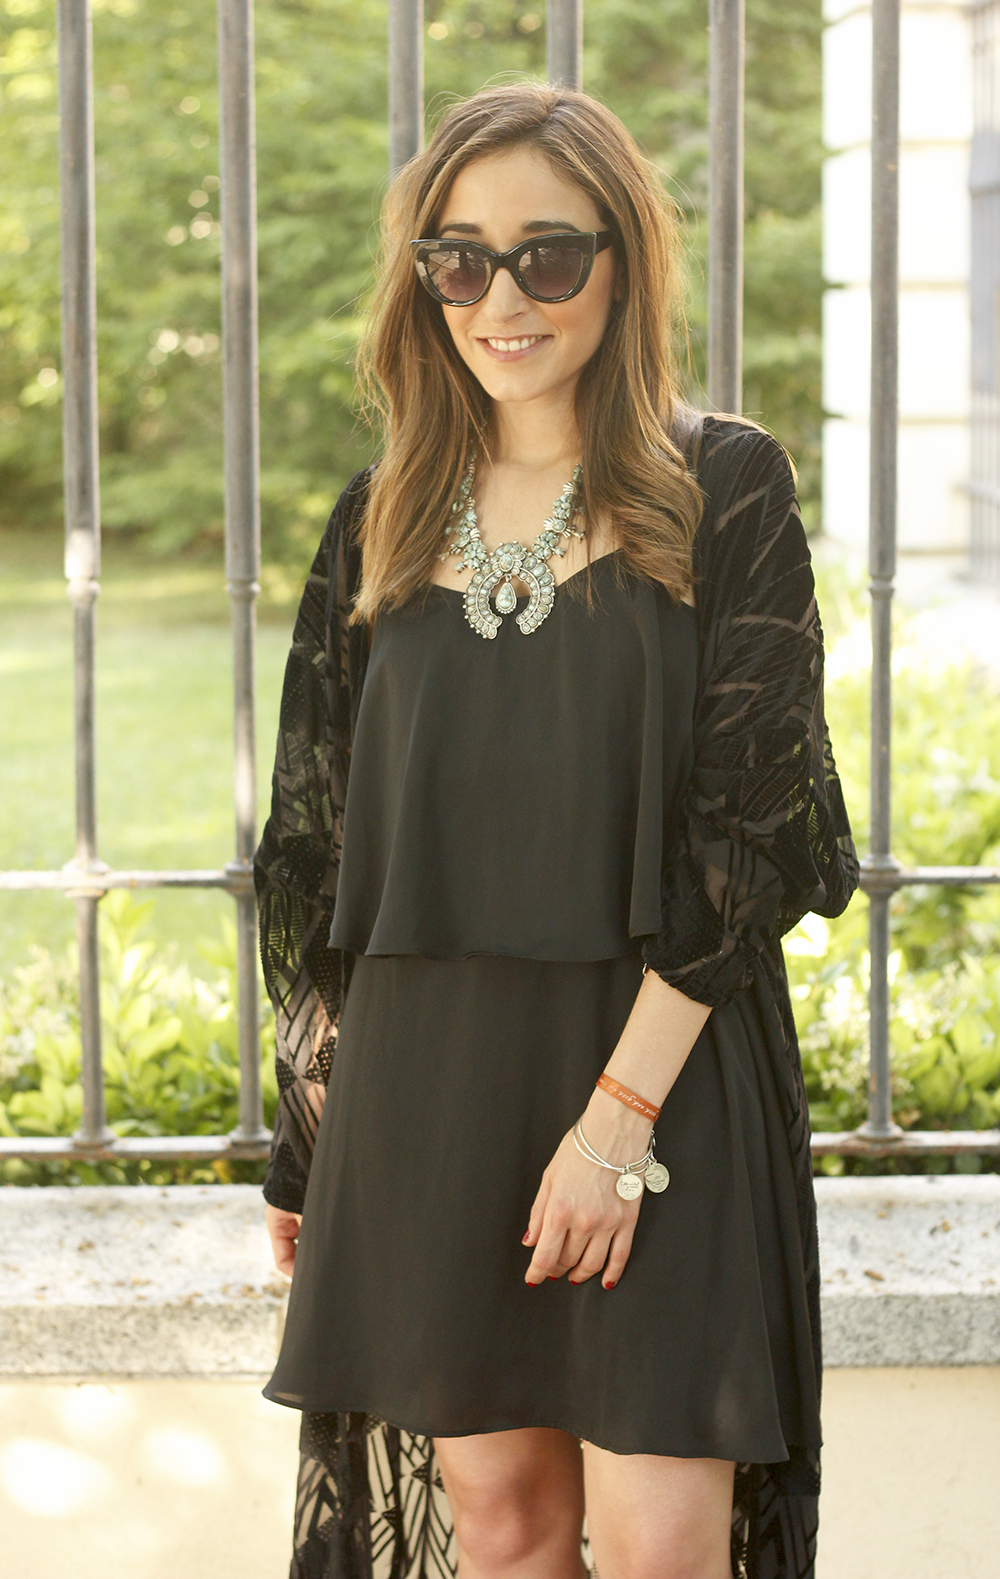 black kimono and black dress sandals accessories summer outfit style fashion sunnies11